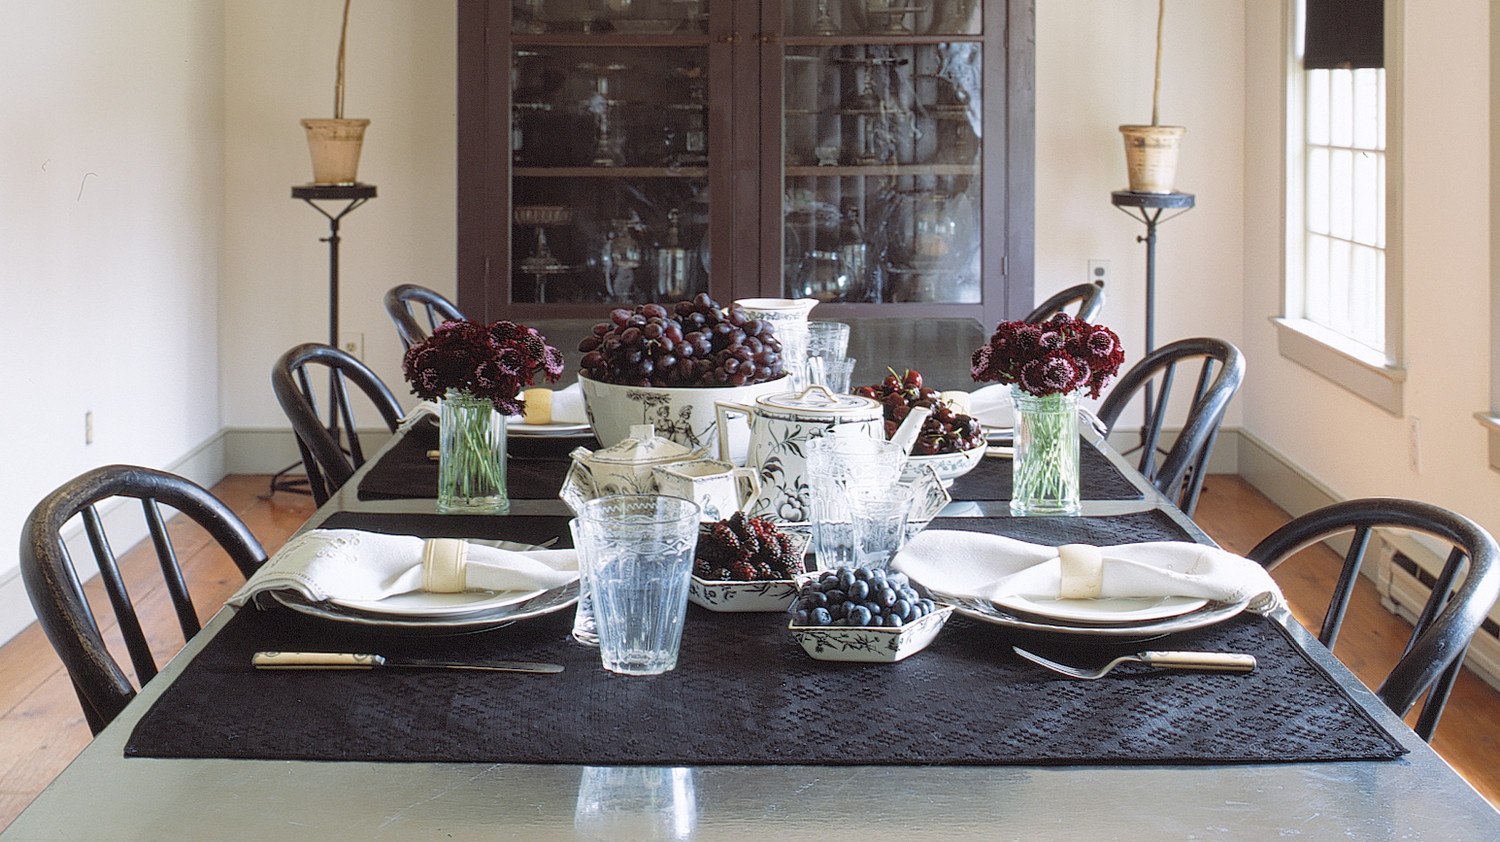 Marthas Turkey Hill Dining Room 5 Bold Ideas For Decorating With Black